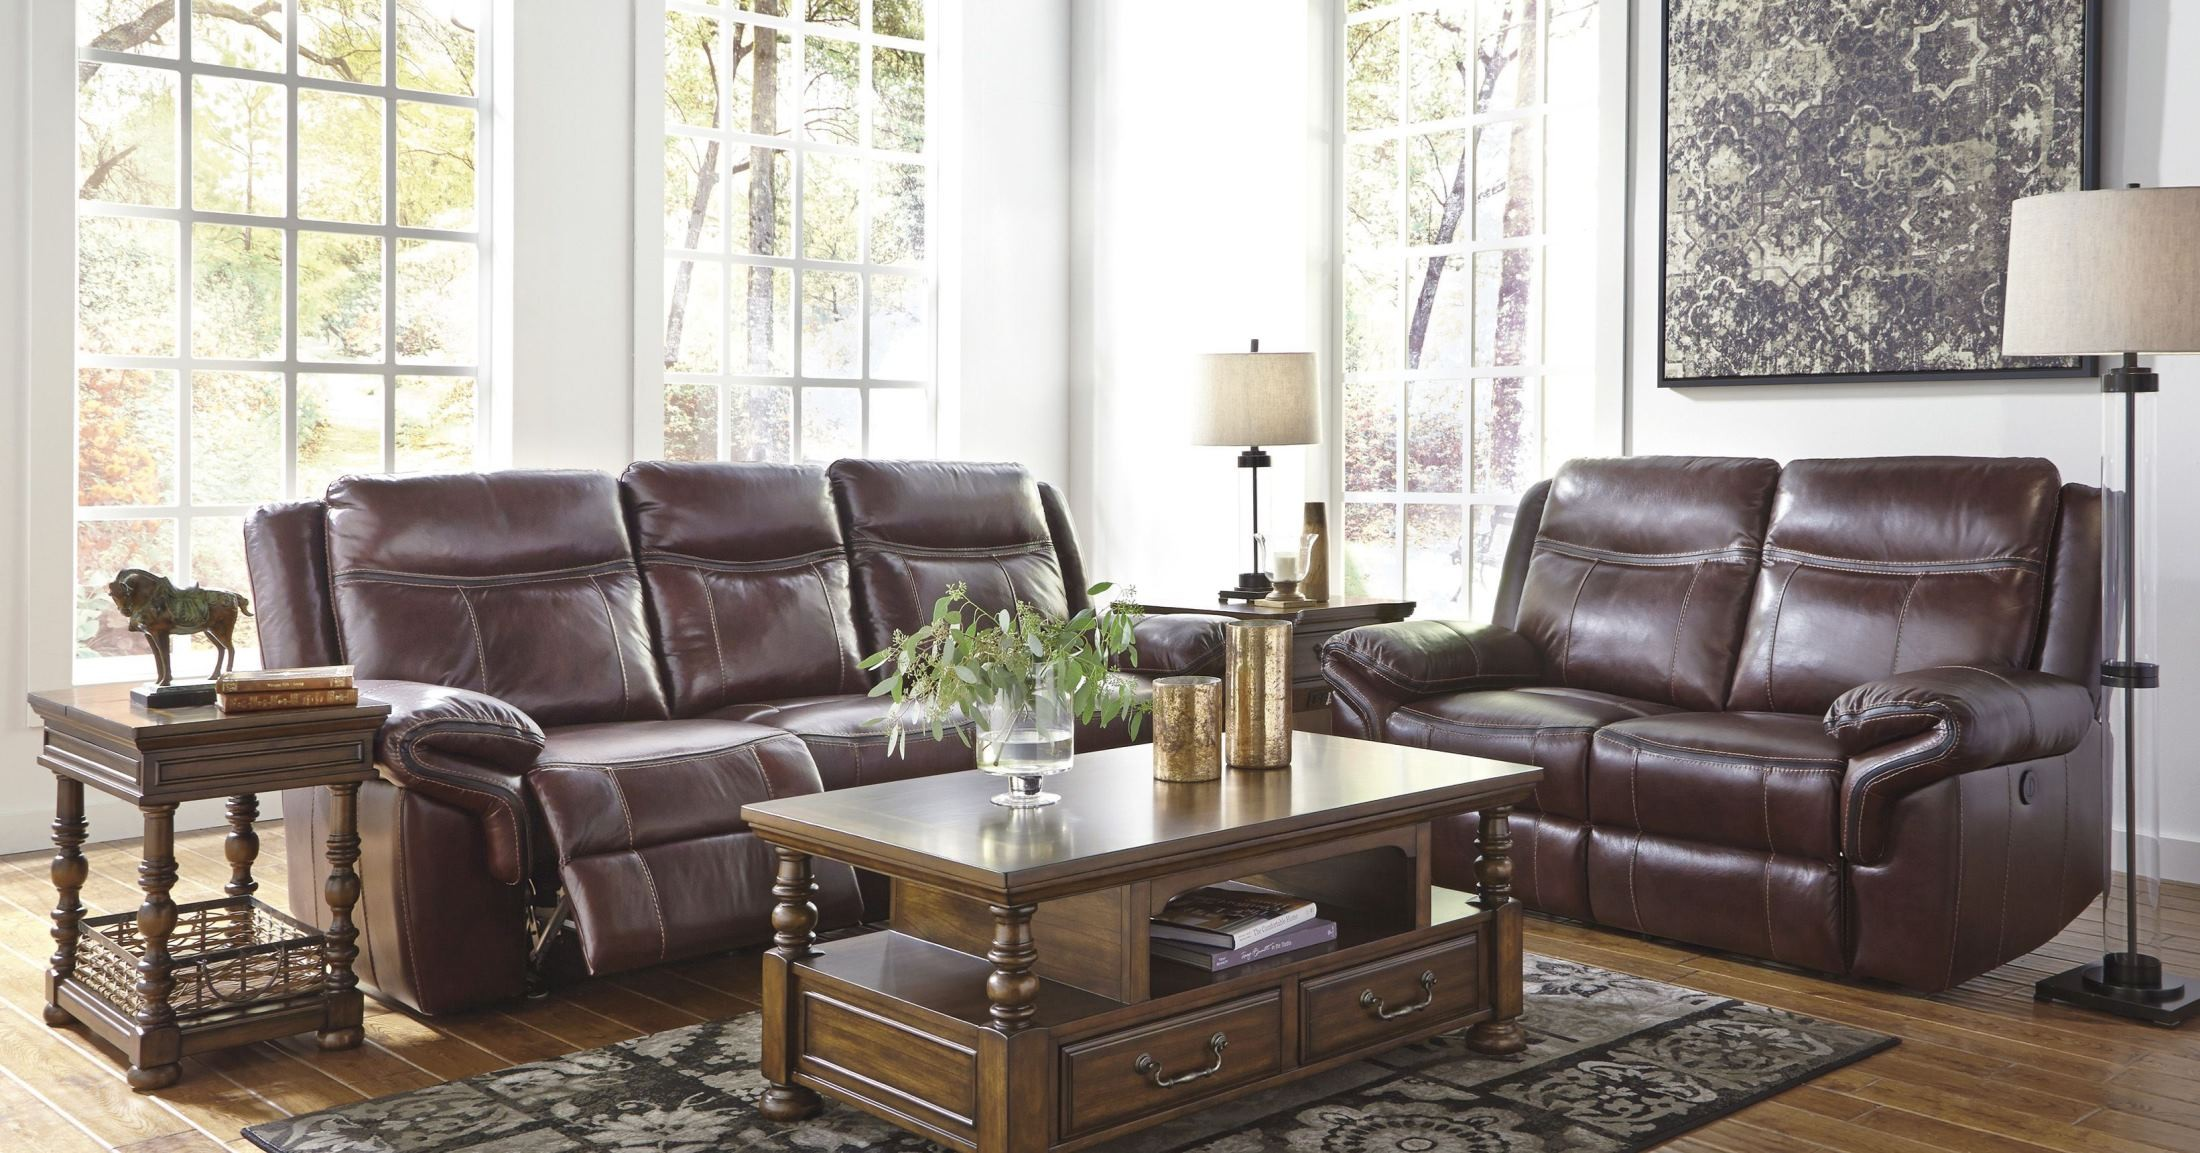 Zephen Mahogany Reclining Power Reclining Living Room Set From Ashley U74400